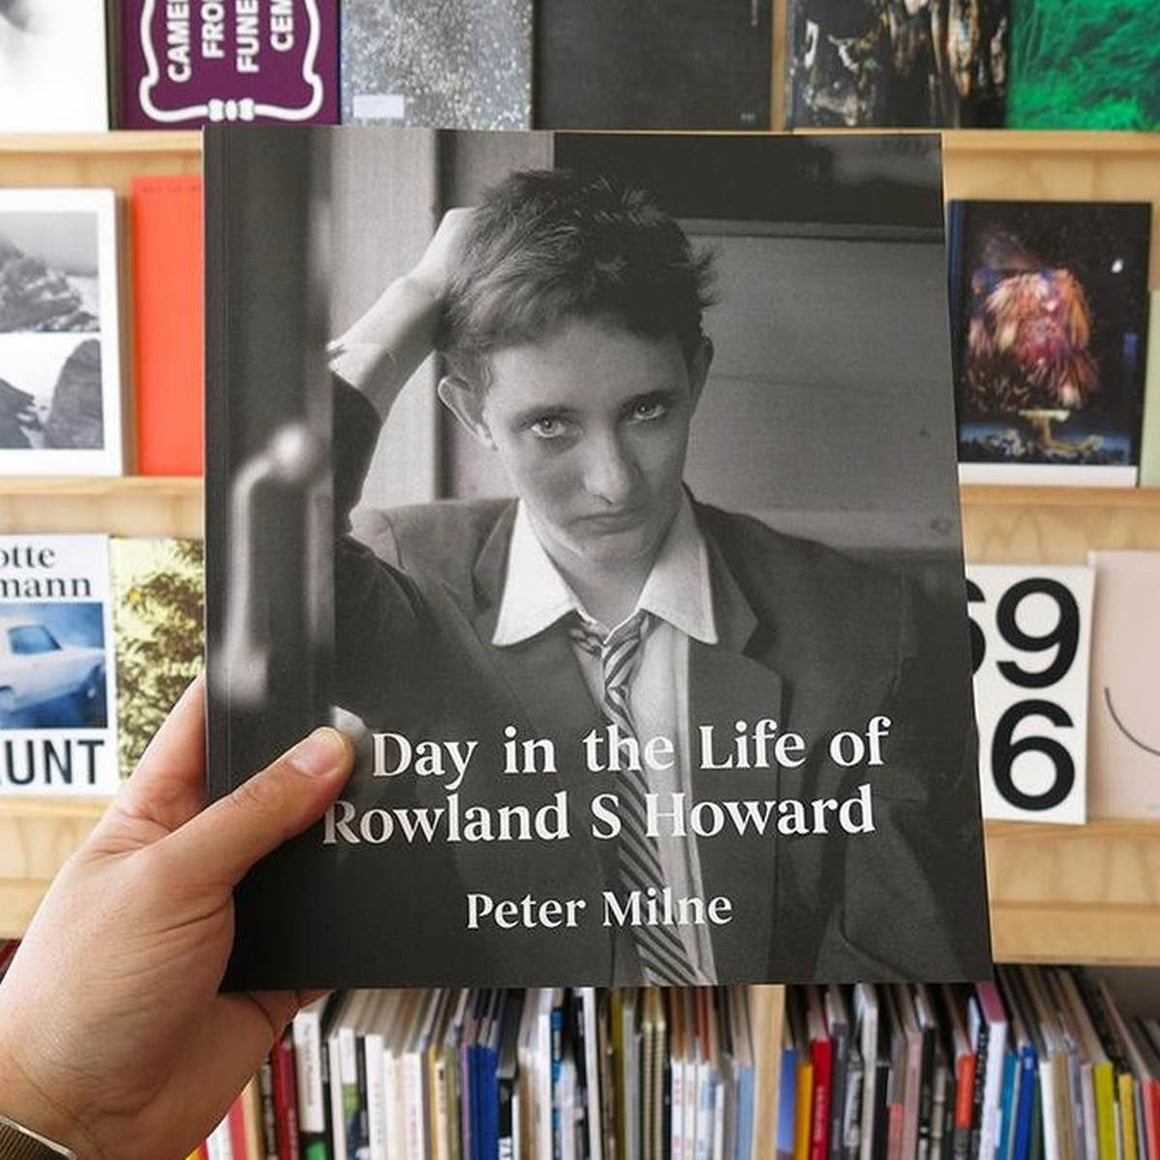 A book cover featuring a cover photo of musician Rowland S Howard